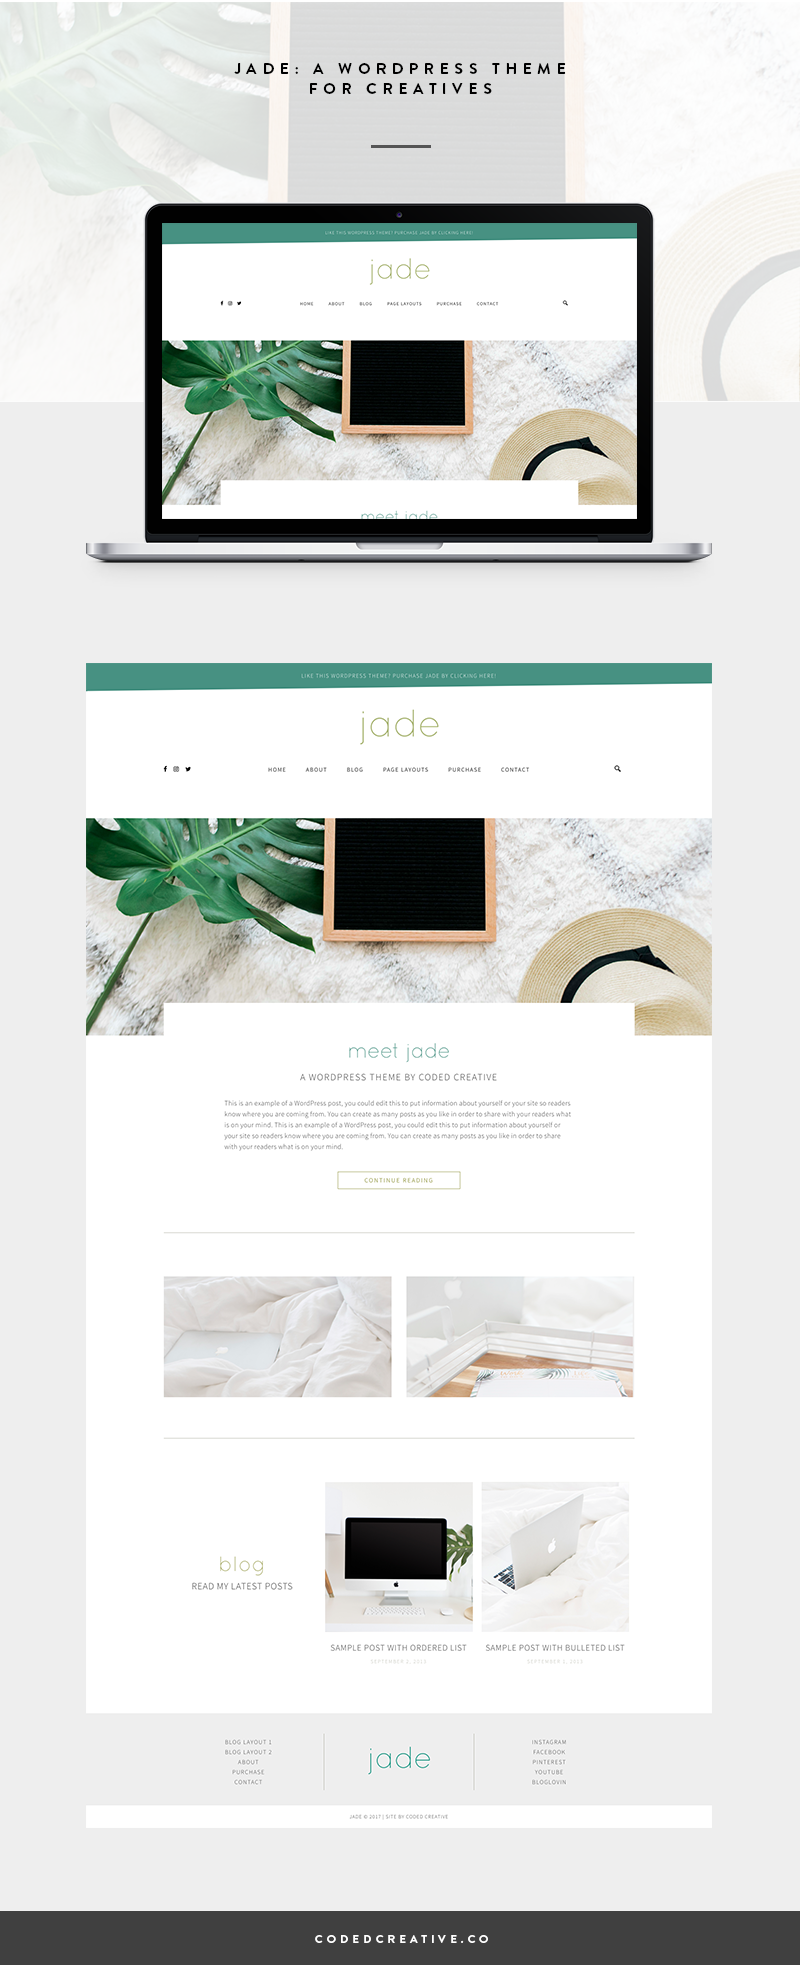 Jade is a beautiful website and blog template created for the WordPress platform.It was created for creative business owners and bloggers who want a unique look for their site while being able to grow their blog and business with ease.